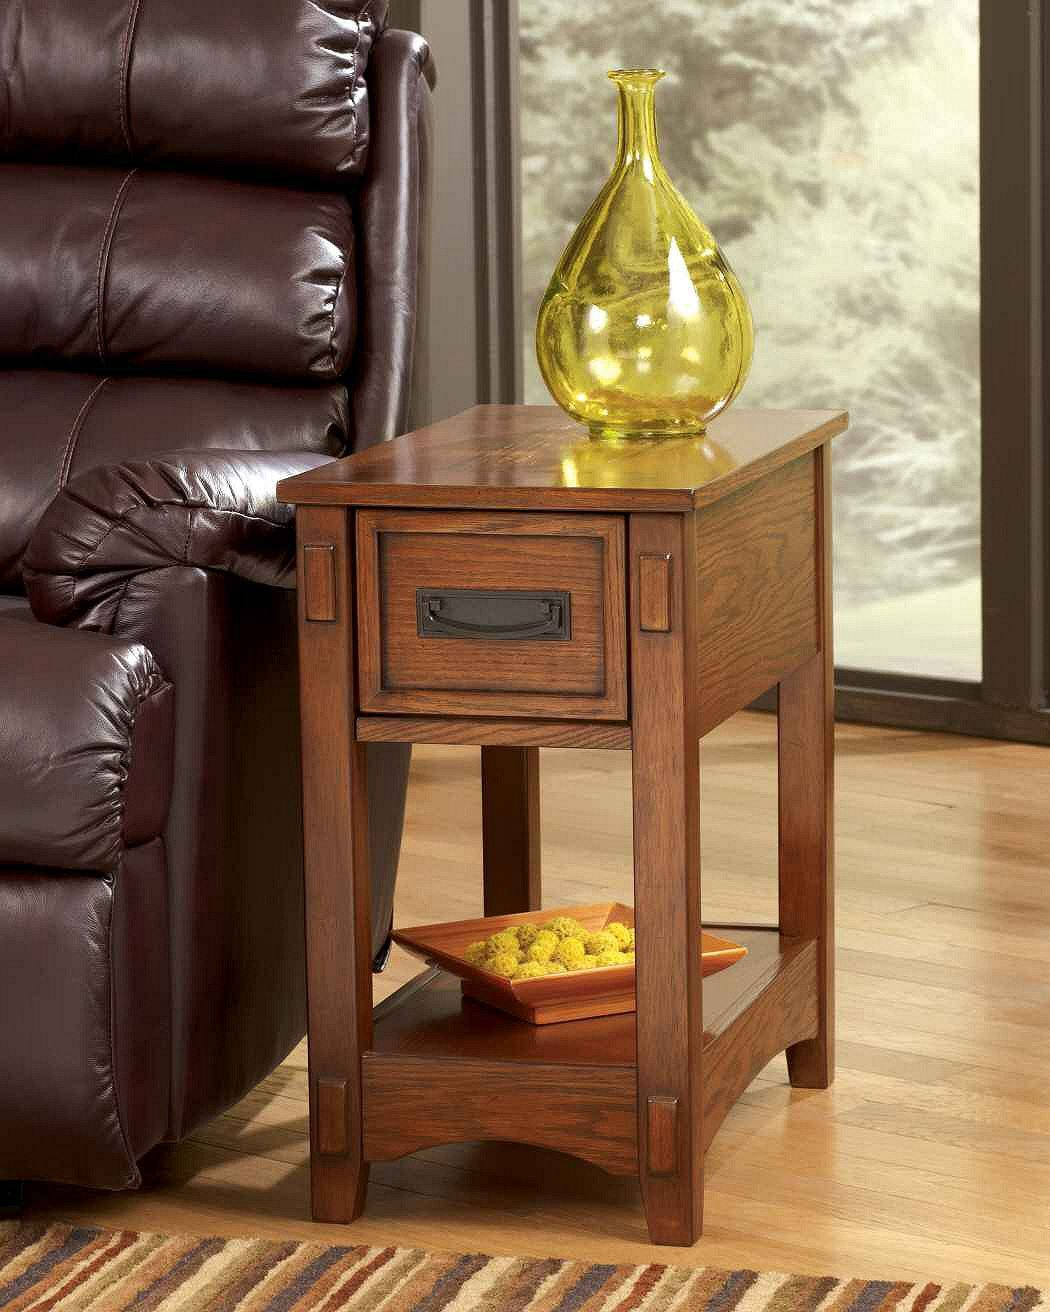 0-000078>Cross Island Chairside Table Brown